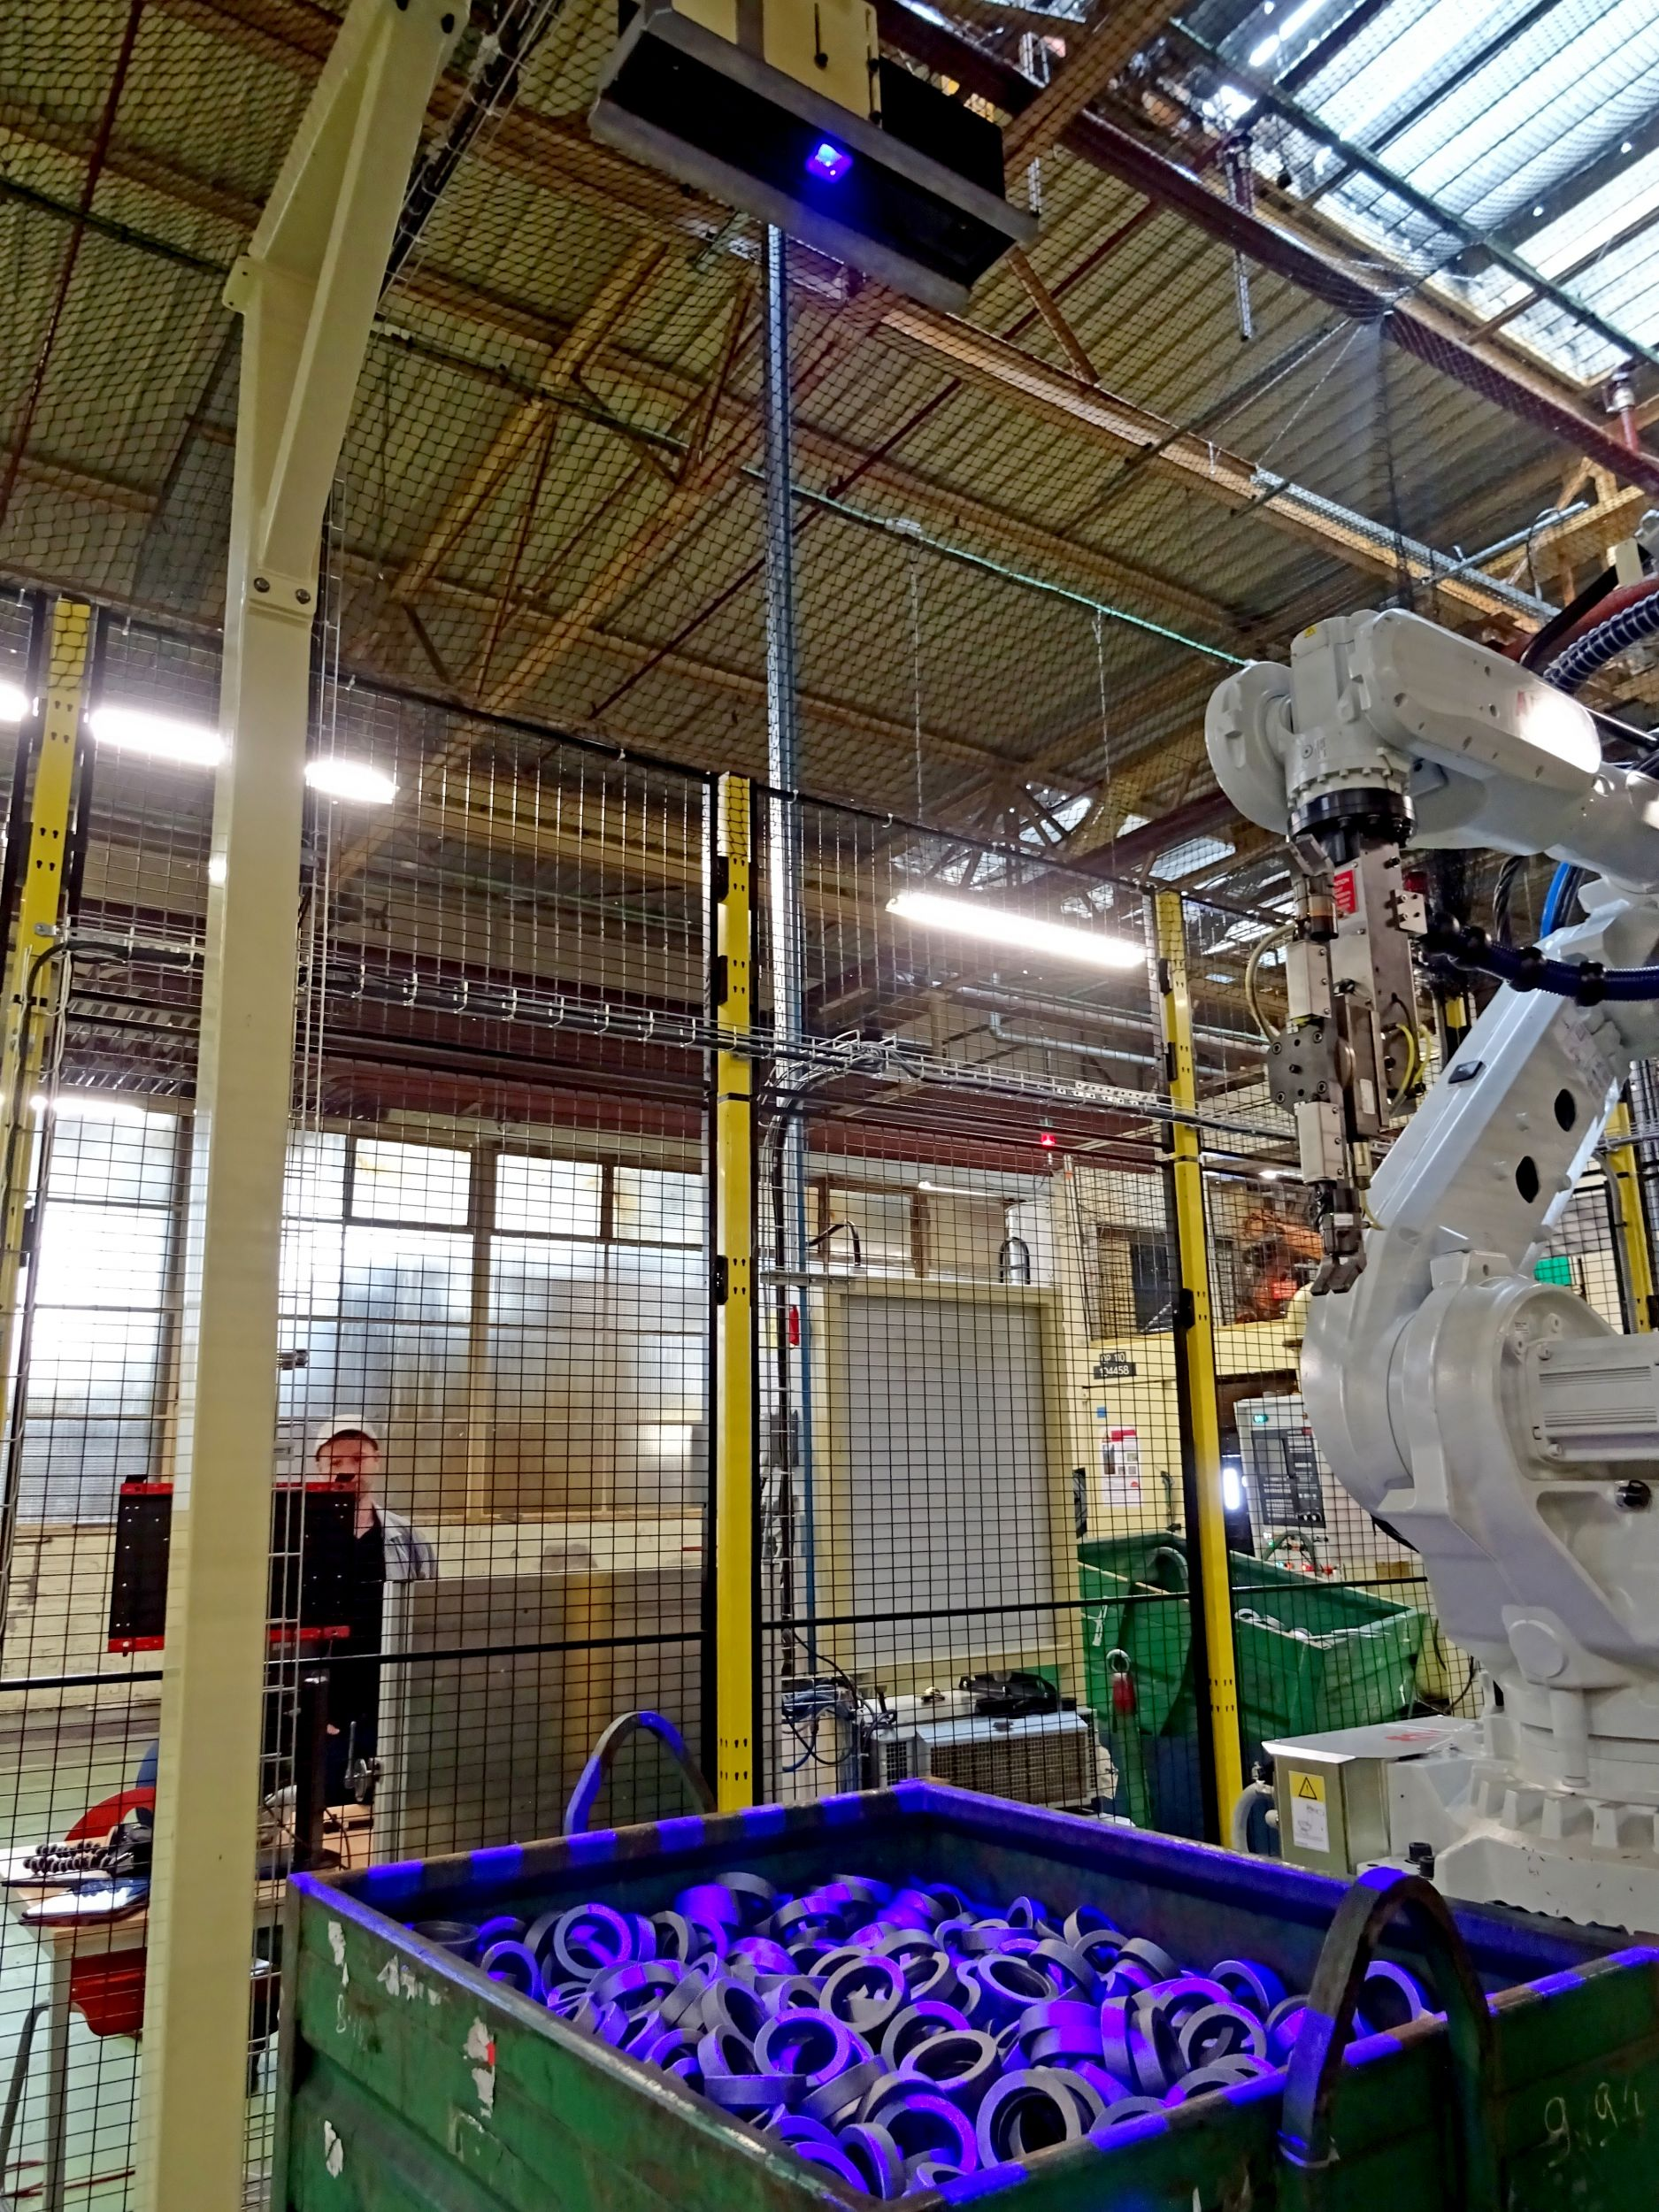 The bin picking unit at Renault Cléon is equipped with an ABB IBR 6700 robot and a Visio Nerf Cirrus3D 1200 sensor (Bild: Visio Nerf)